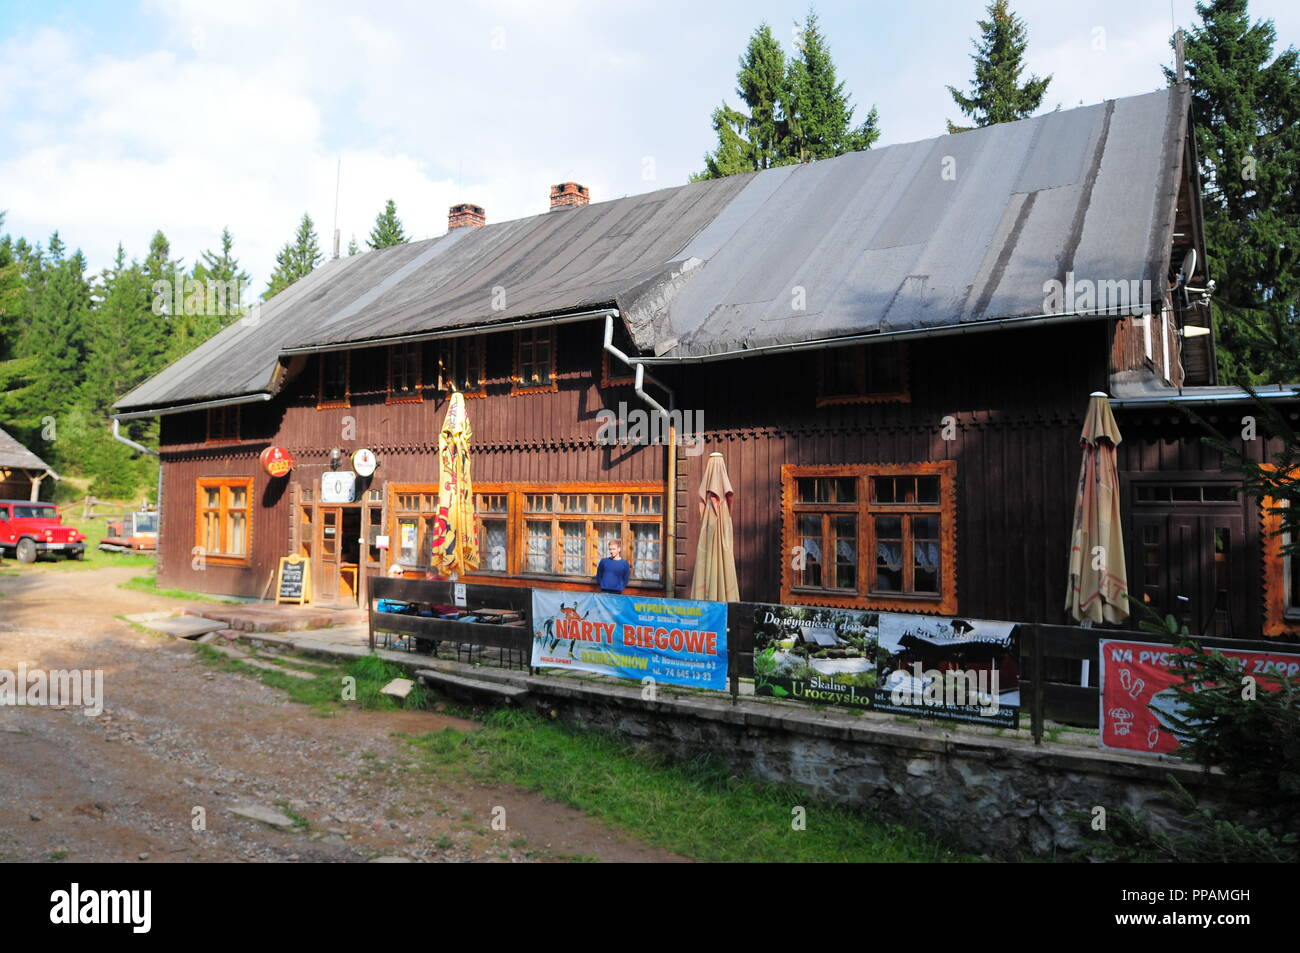 Mountain shelter 'Sowa' in Góry Sowie (Owl Mountains)(Eulengebirge) Poland 2018 - Stock Image